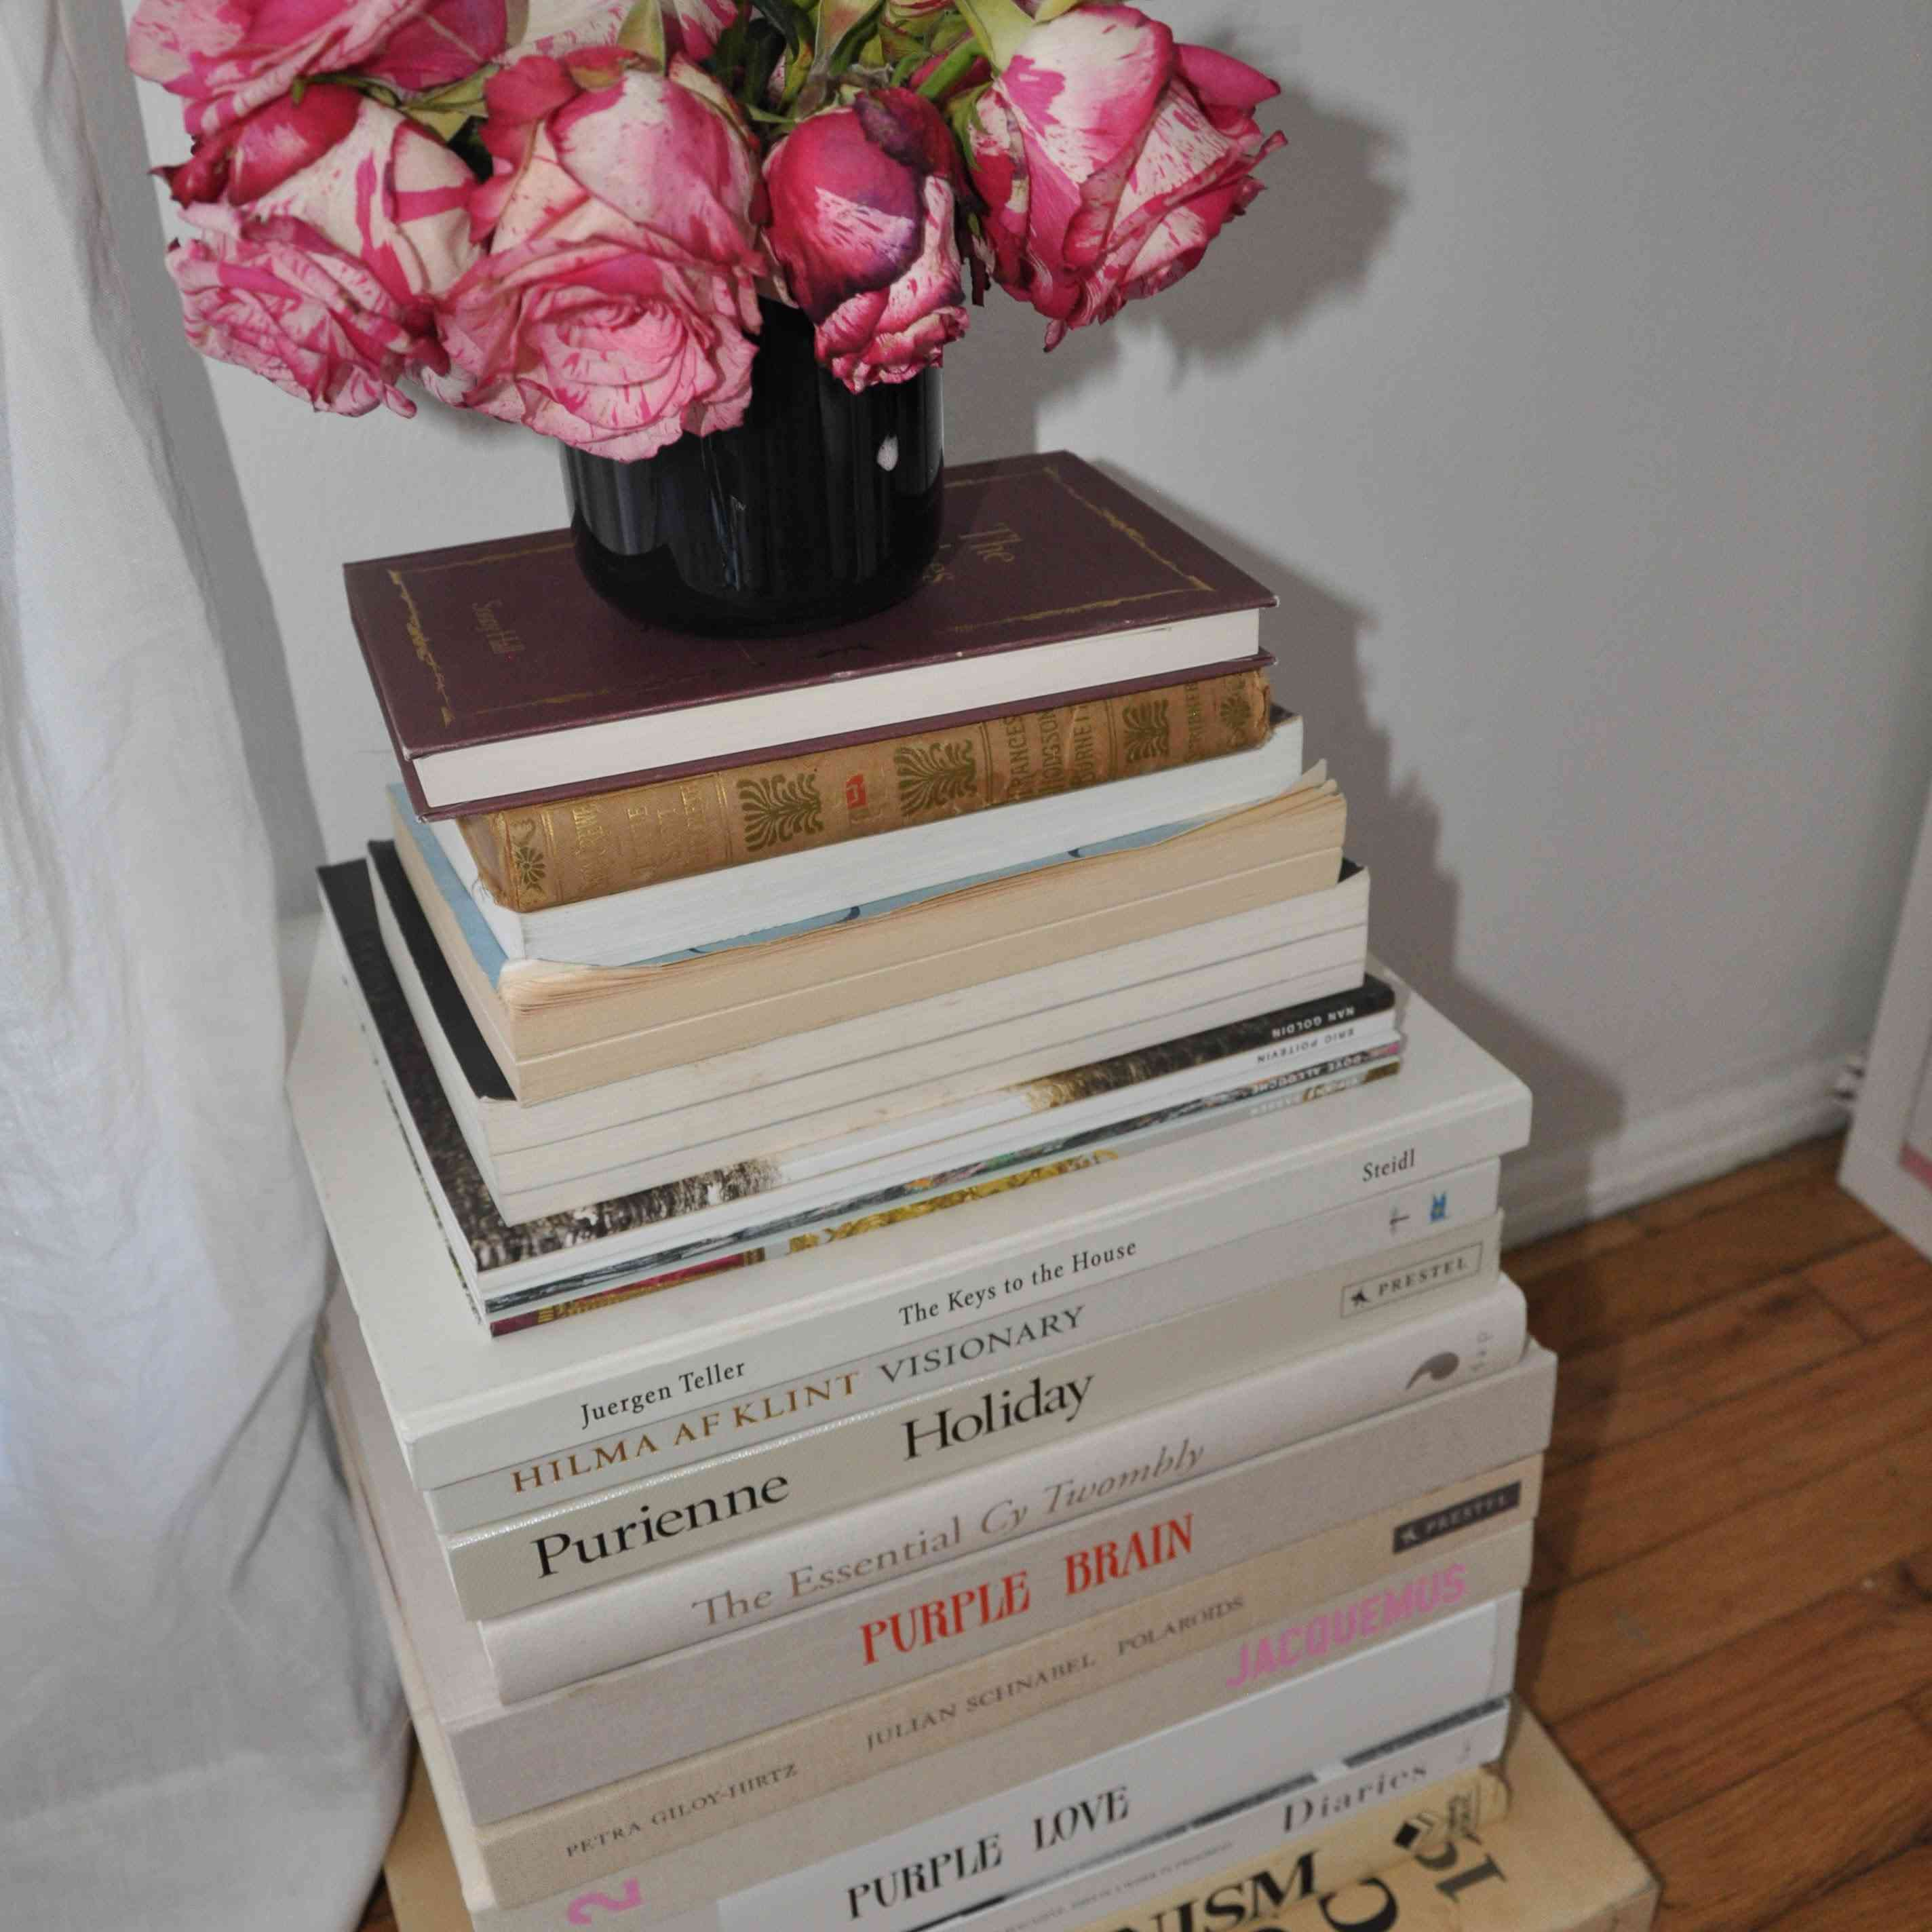 Large stack of books with roses on top.